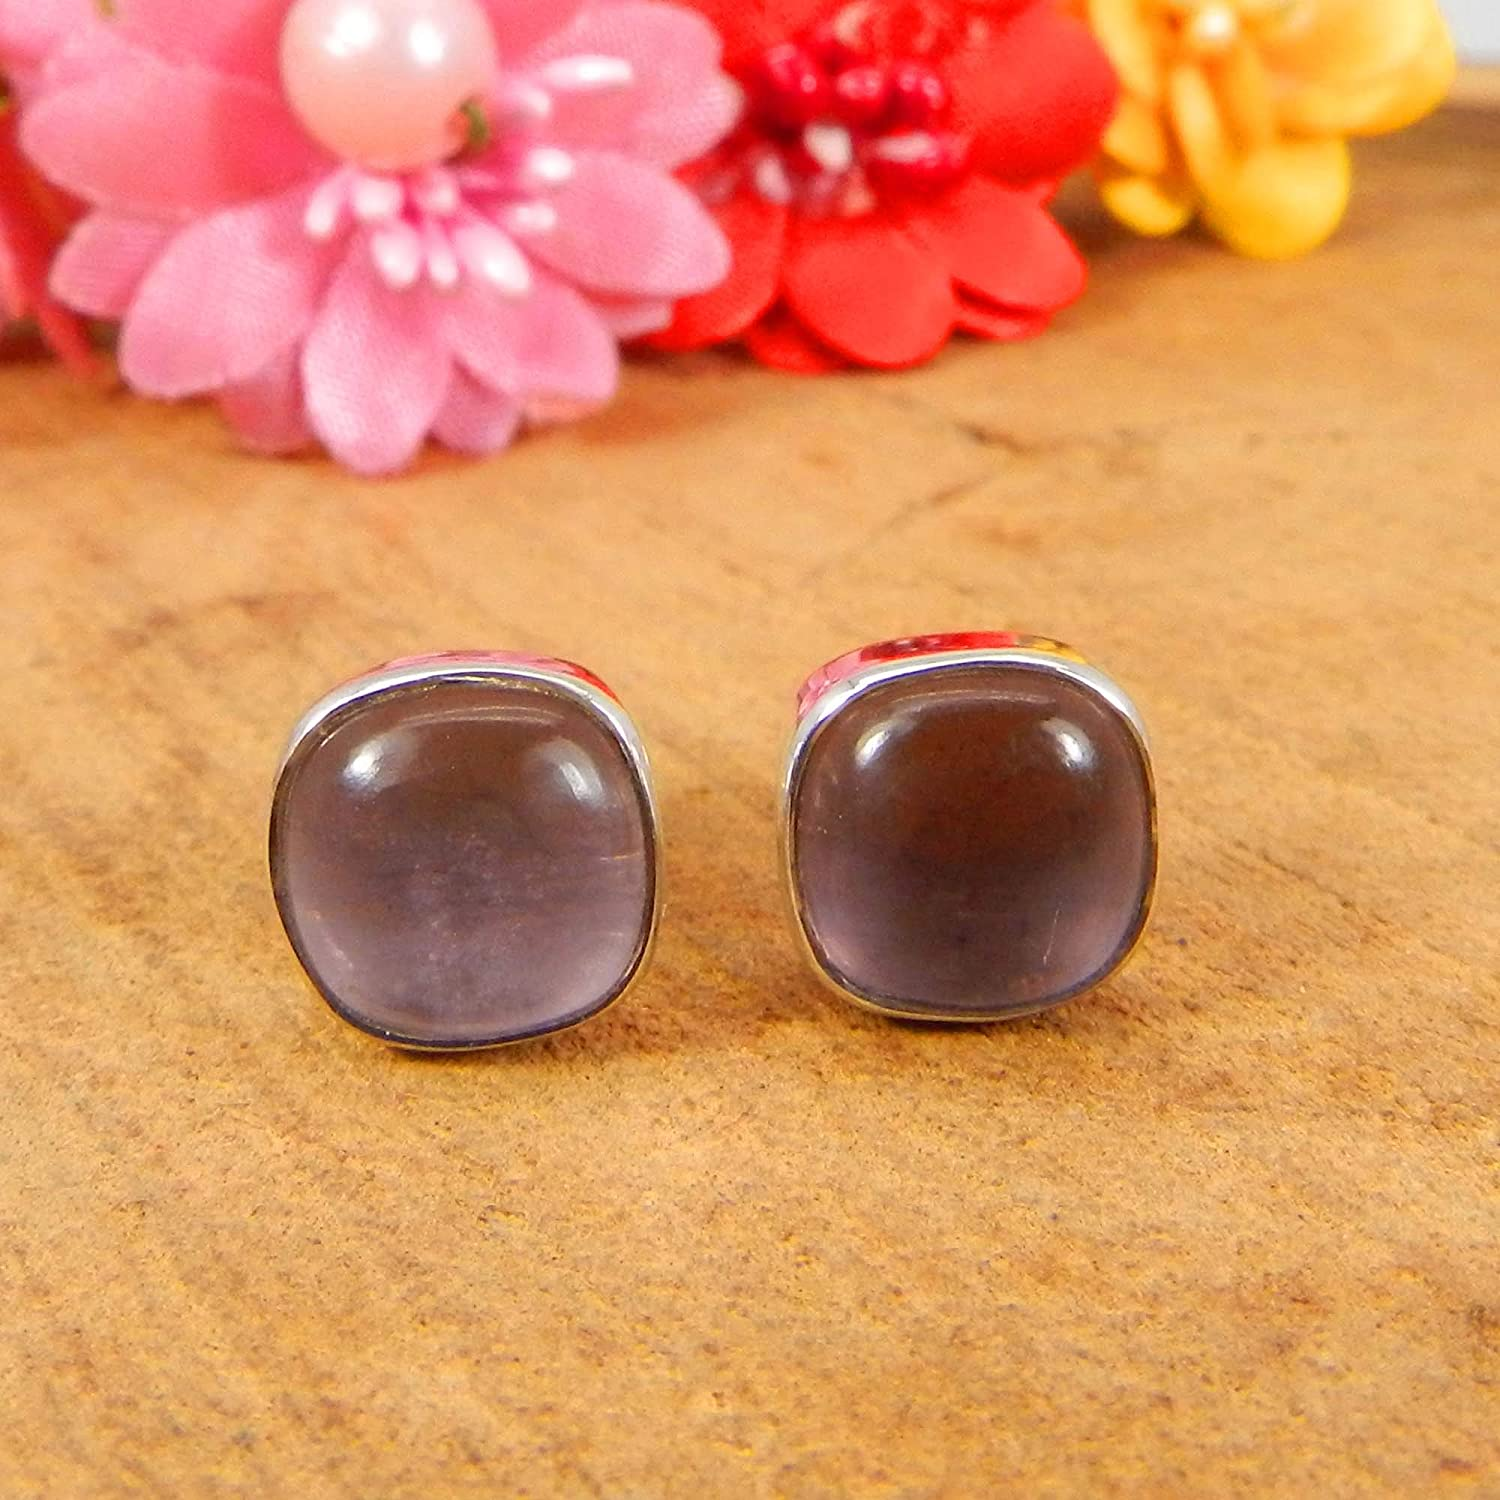 925 Sterling Silver Gemstone Cushion Stud Earrings Pink Amethyst Hydro, Black Ruthenium Gift for Her